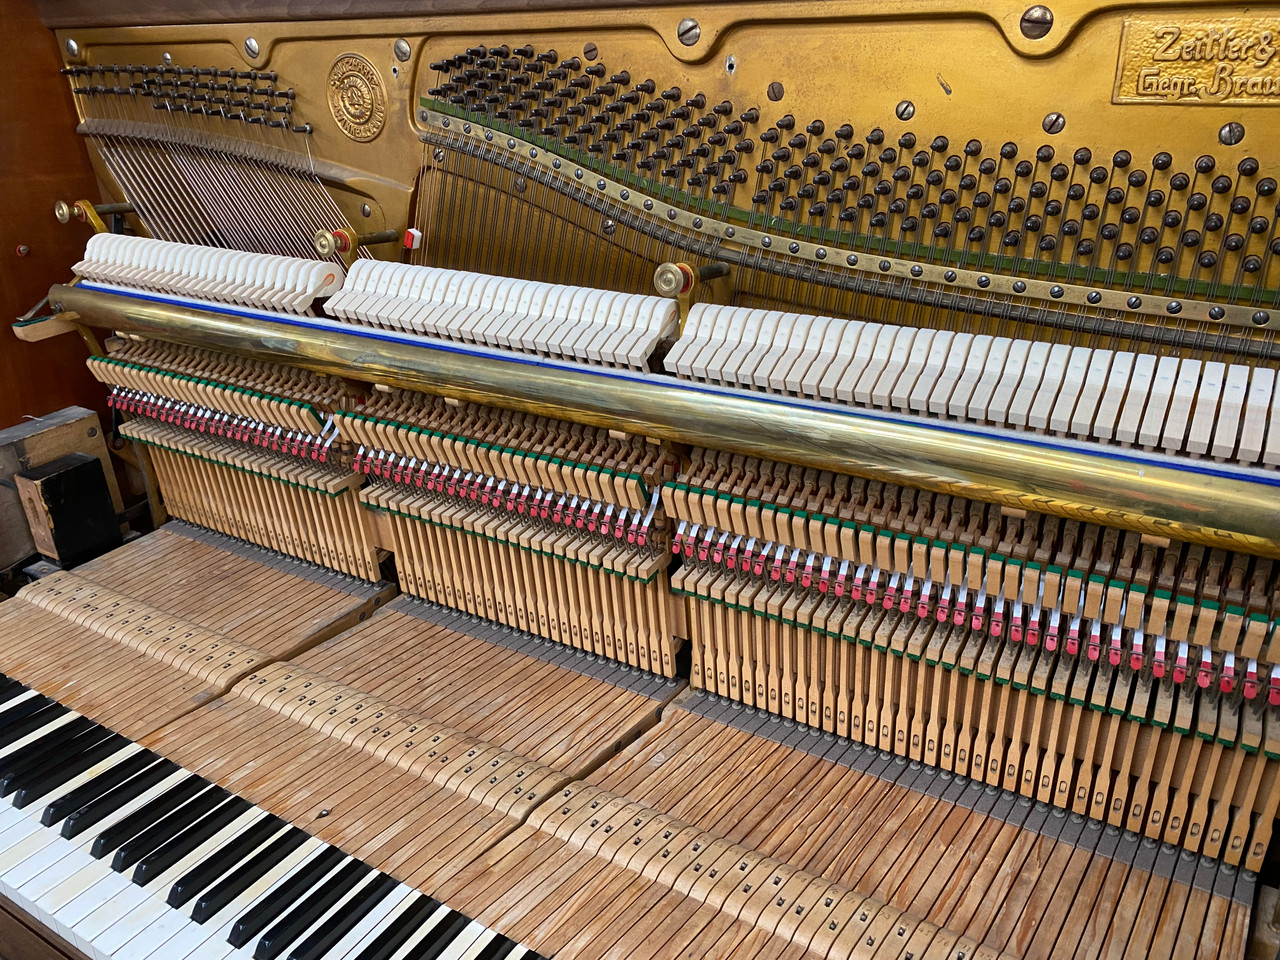 Zeiter & Winkelmann Player Piano. The piano action has been fully restored, including new German hammers felts, leathers and dampers, giving this piano a new lease on life. More importantly in order to have the player mechanism functioning properly.